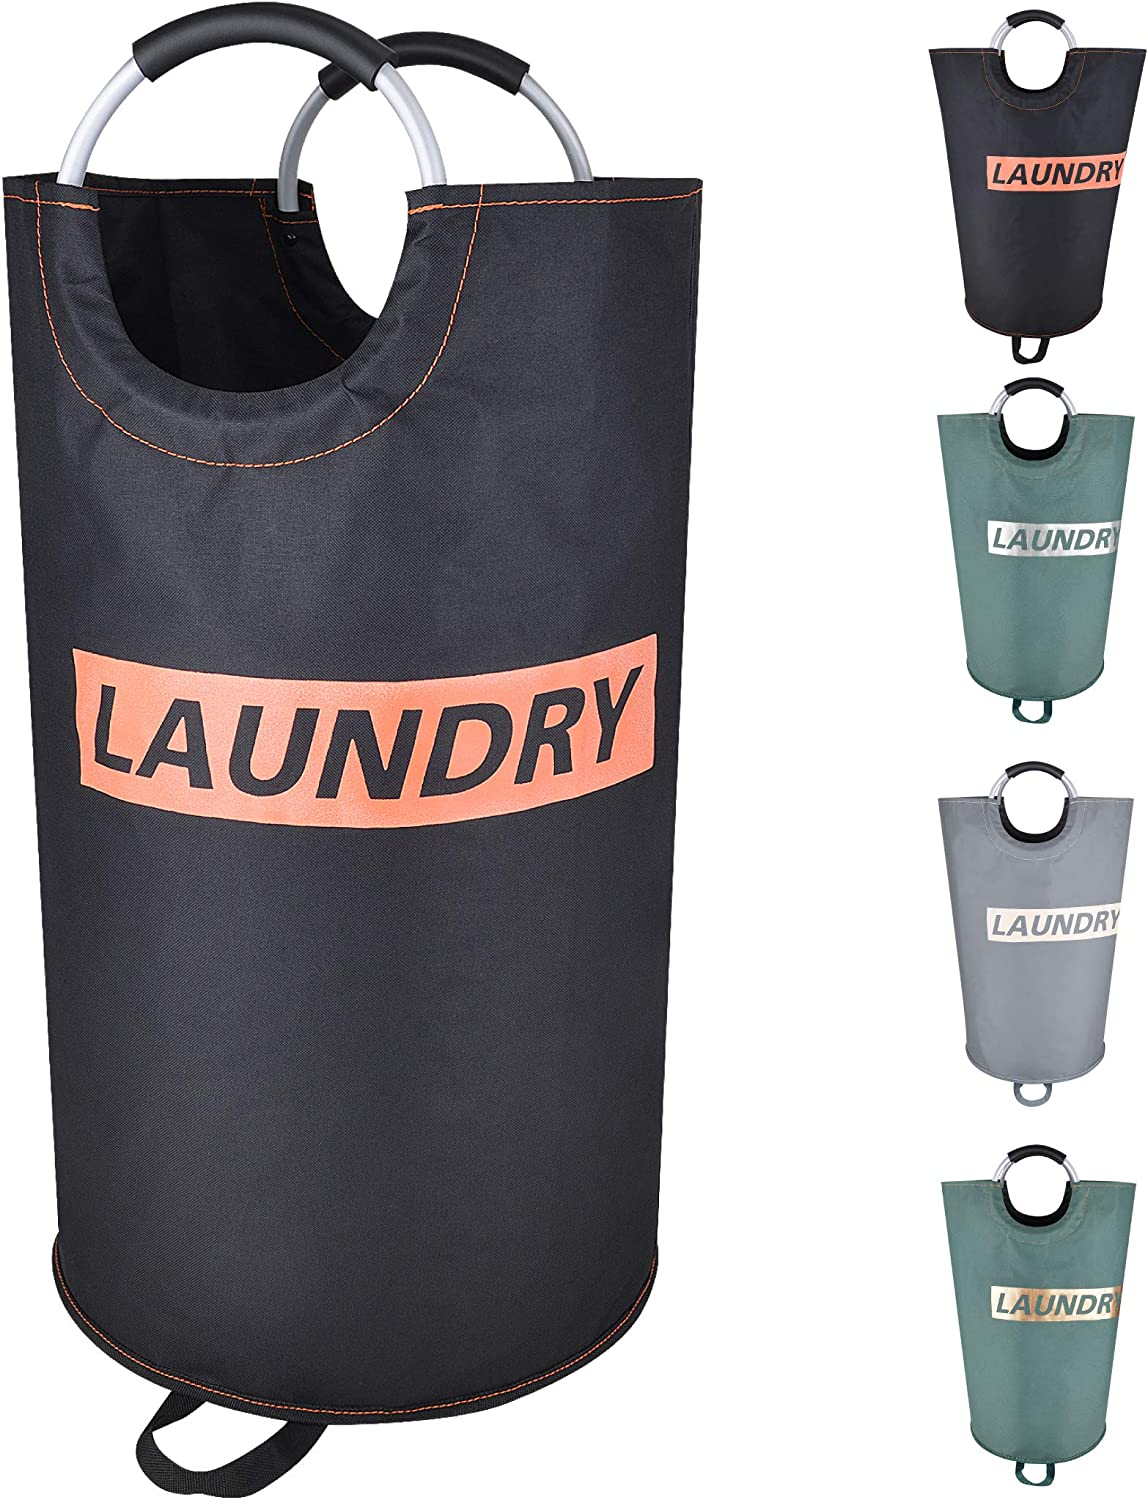 DOKEHOM 115L X-Large Laundry Basket with Coin Bag, Collapsible Fabric Laundry Hamper, Foldable Clothes Bag, Folding Washing Bin (Black&Orange, XL)